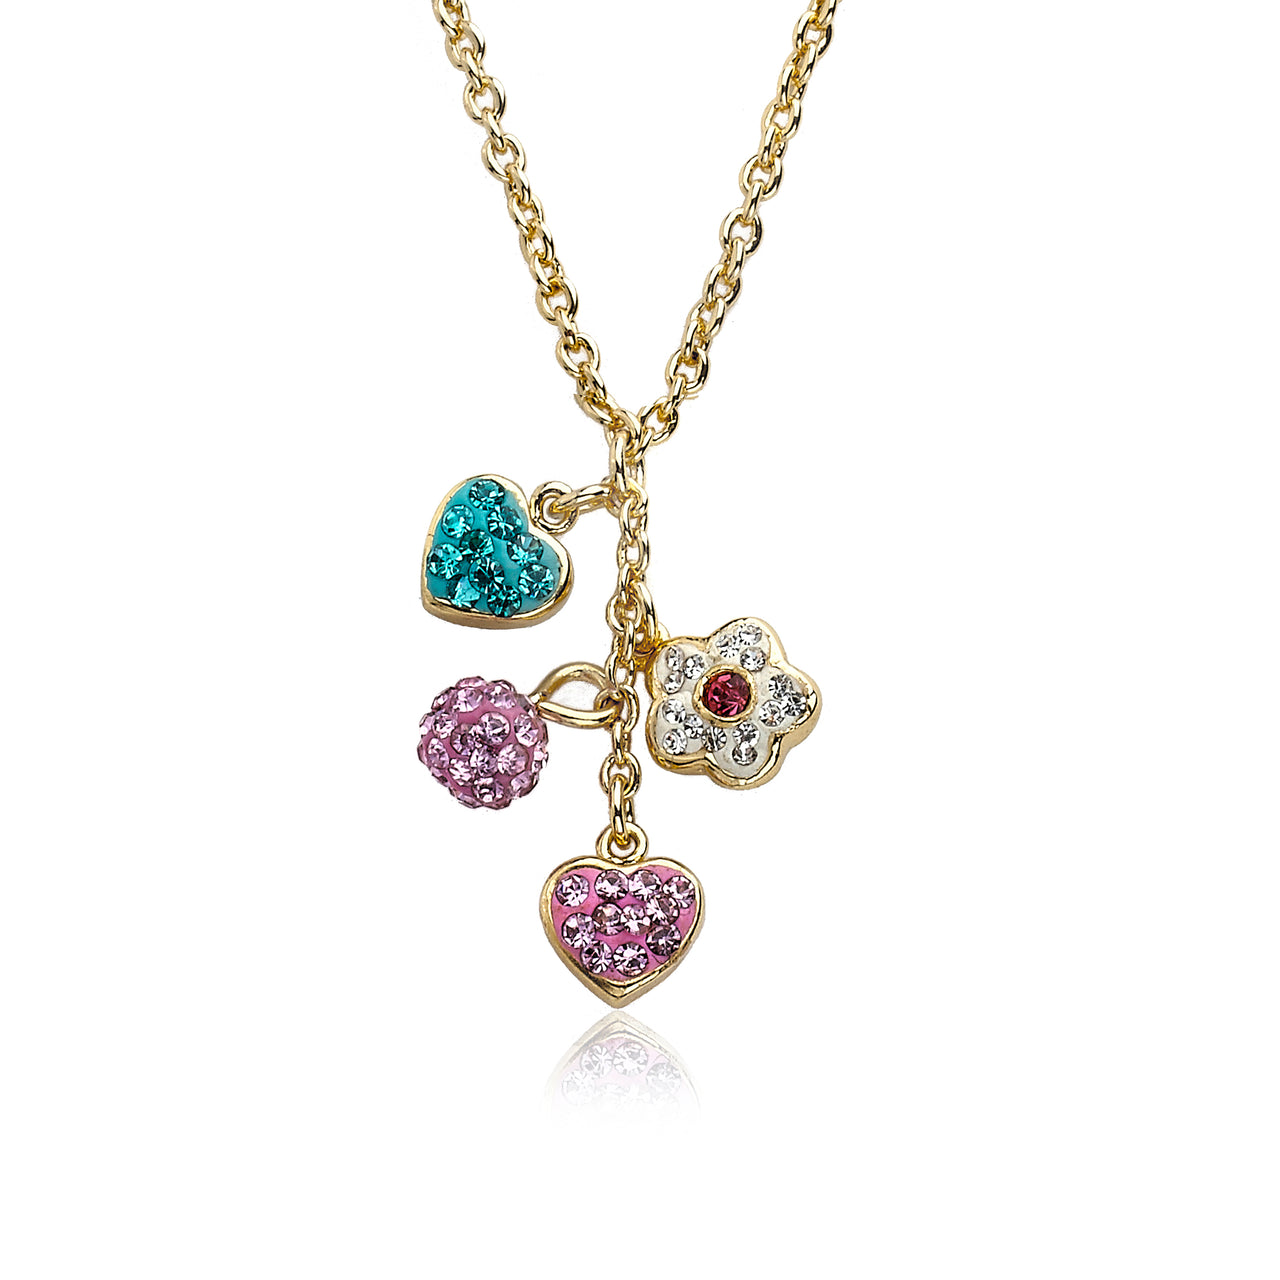 Heart Of Jewels Crystal Heart, Flower & Ball Shape Key Chain Necklace